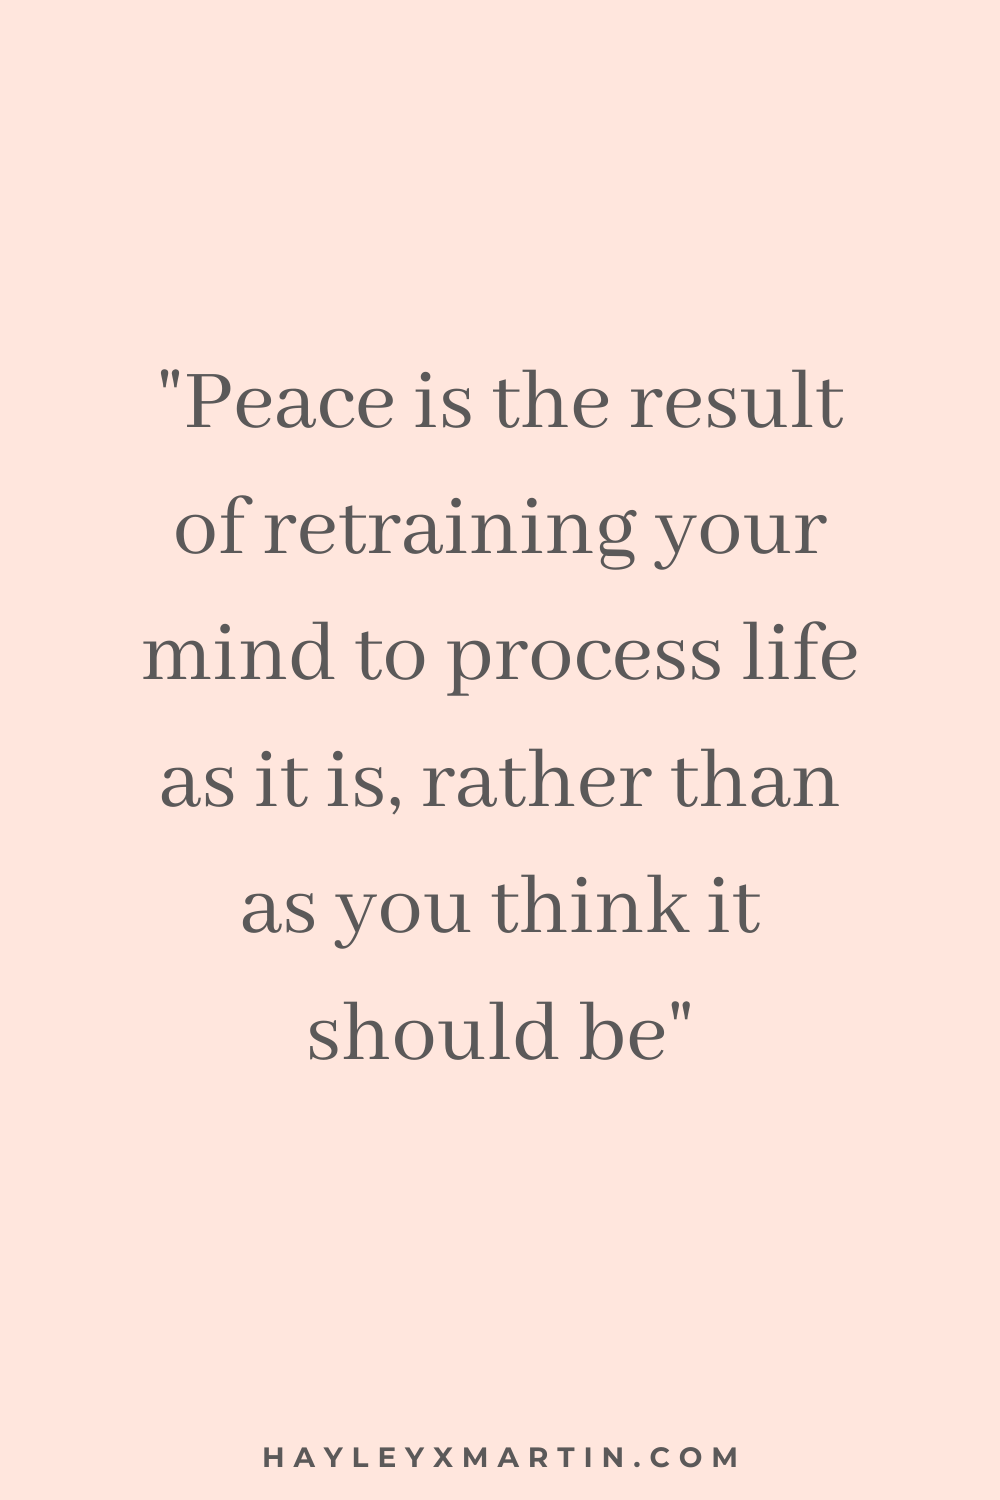 PEACE IS THE RESULT OF RETRAINING YOUR MIND TO PROCESS LIFE AS IT IS, RATHER THAN AS YOU THINK IT SHOULD BE